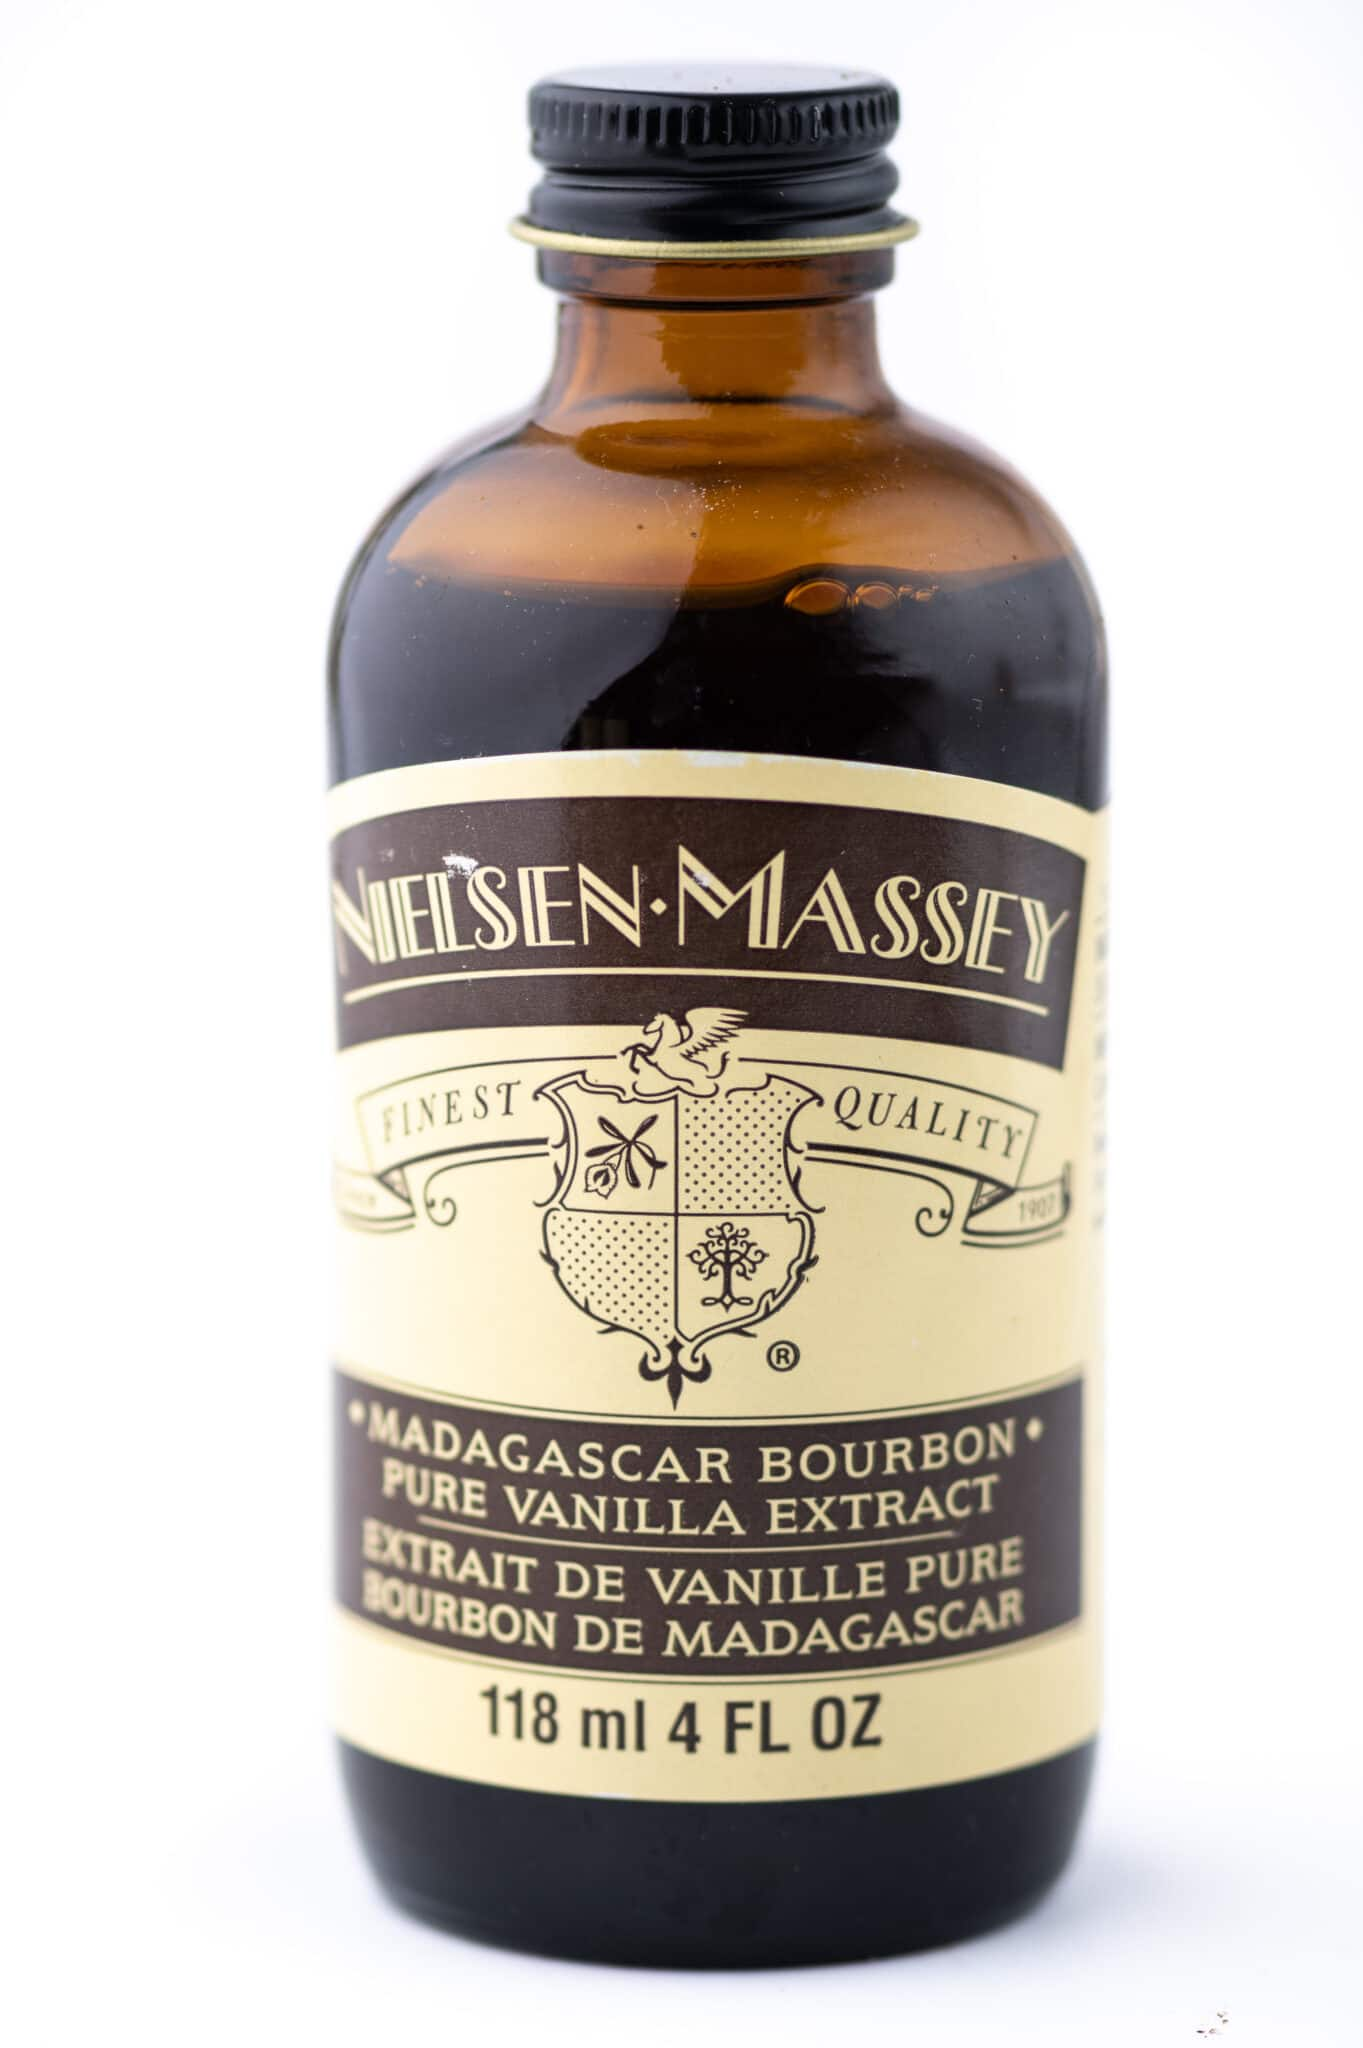 A bottle of Madagascar vanilla with a red label against a bright white background.